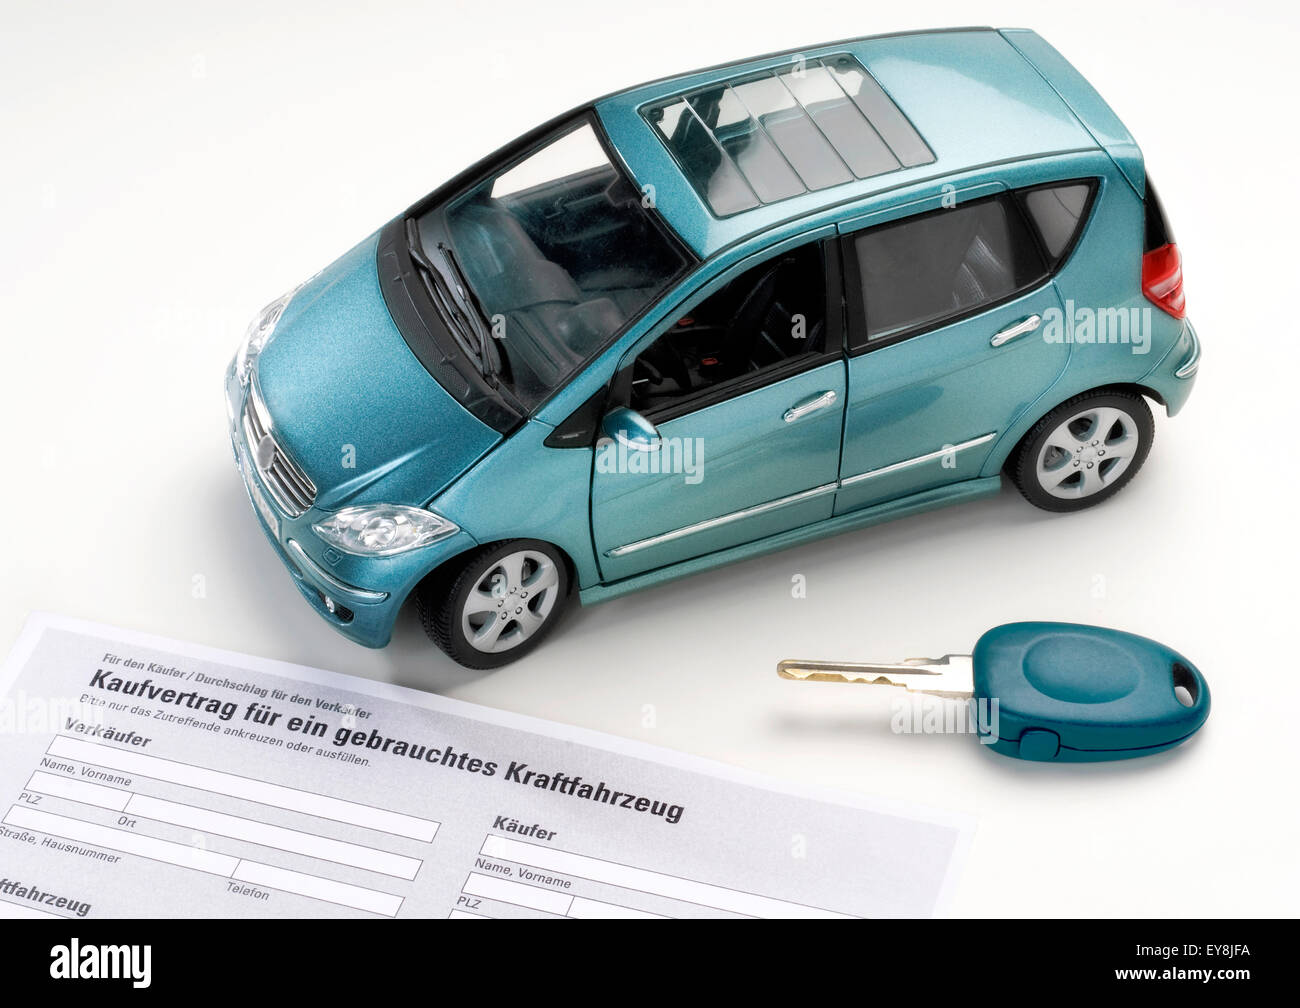 car with key and purchase agreement for a used vehicle stock photo